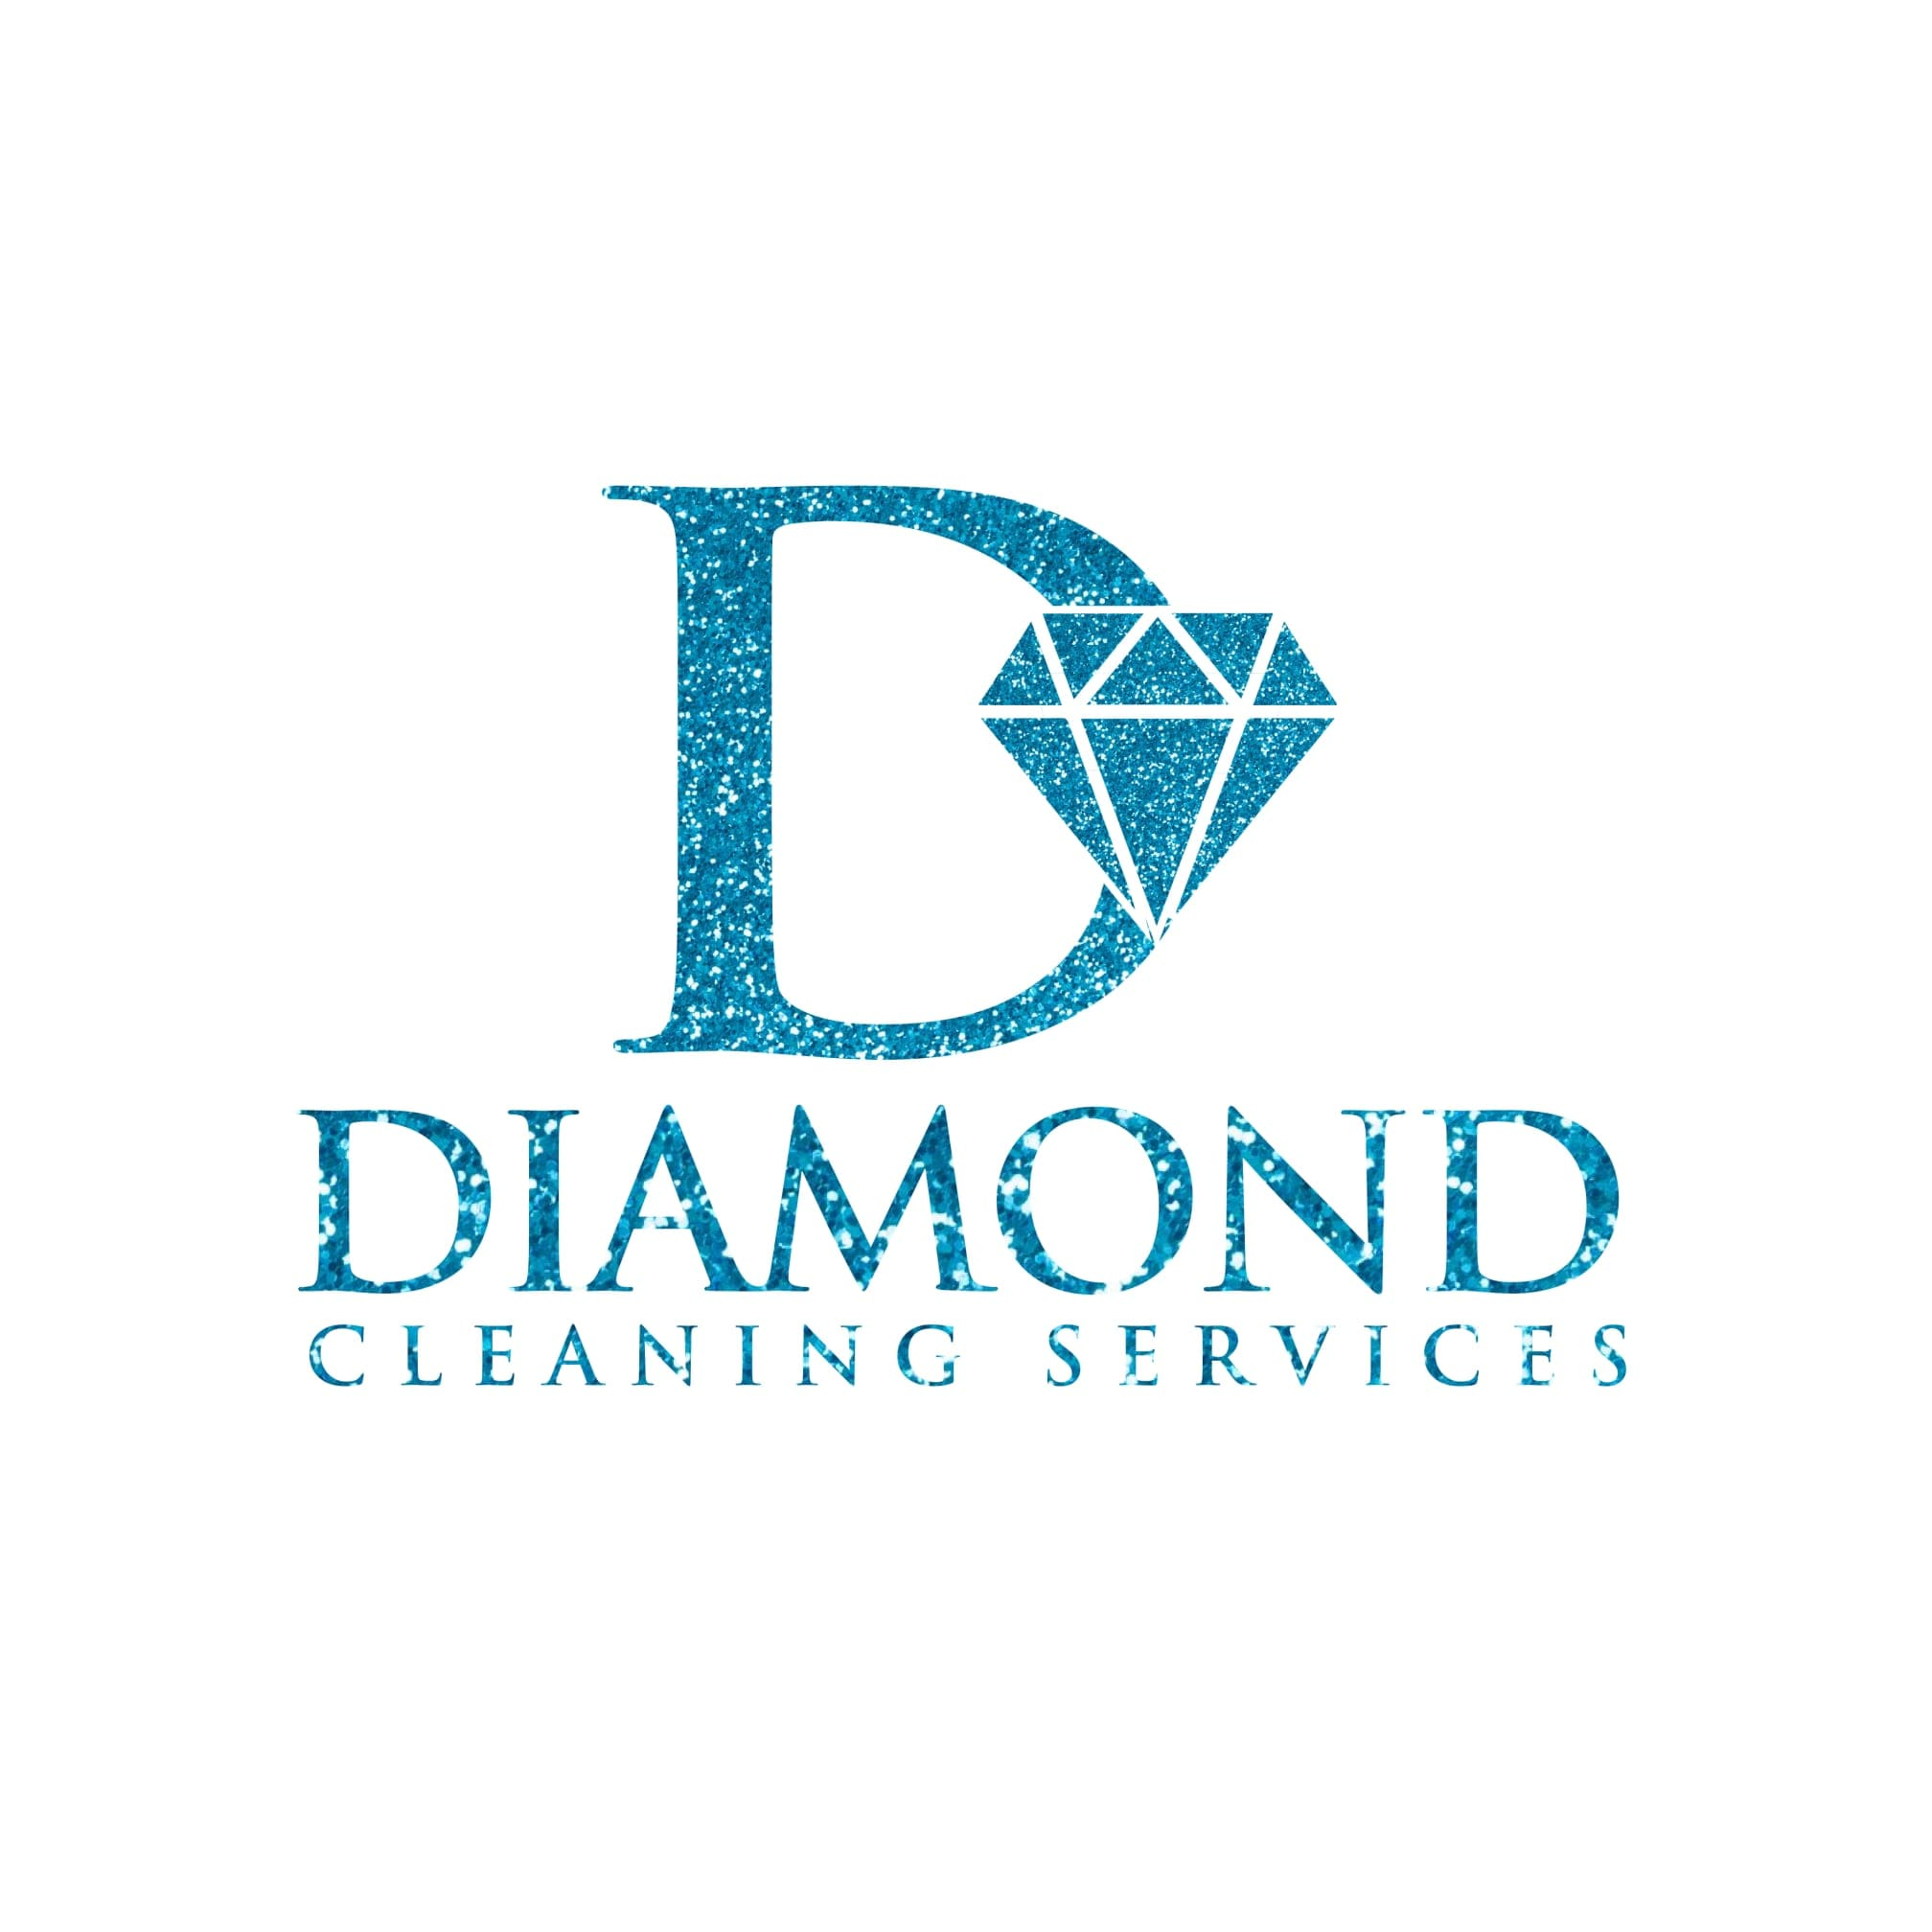 Diamond Cleaning Services - Haywards Heath, West Sussex RH16 3UL - 01444 685106 | ShowMeLocal.com